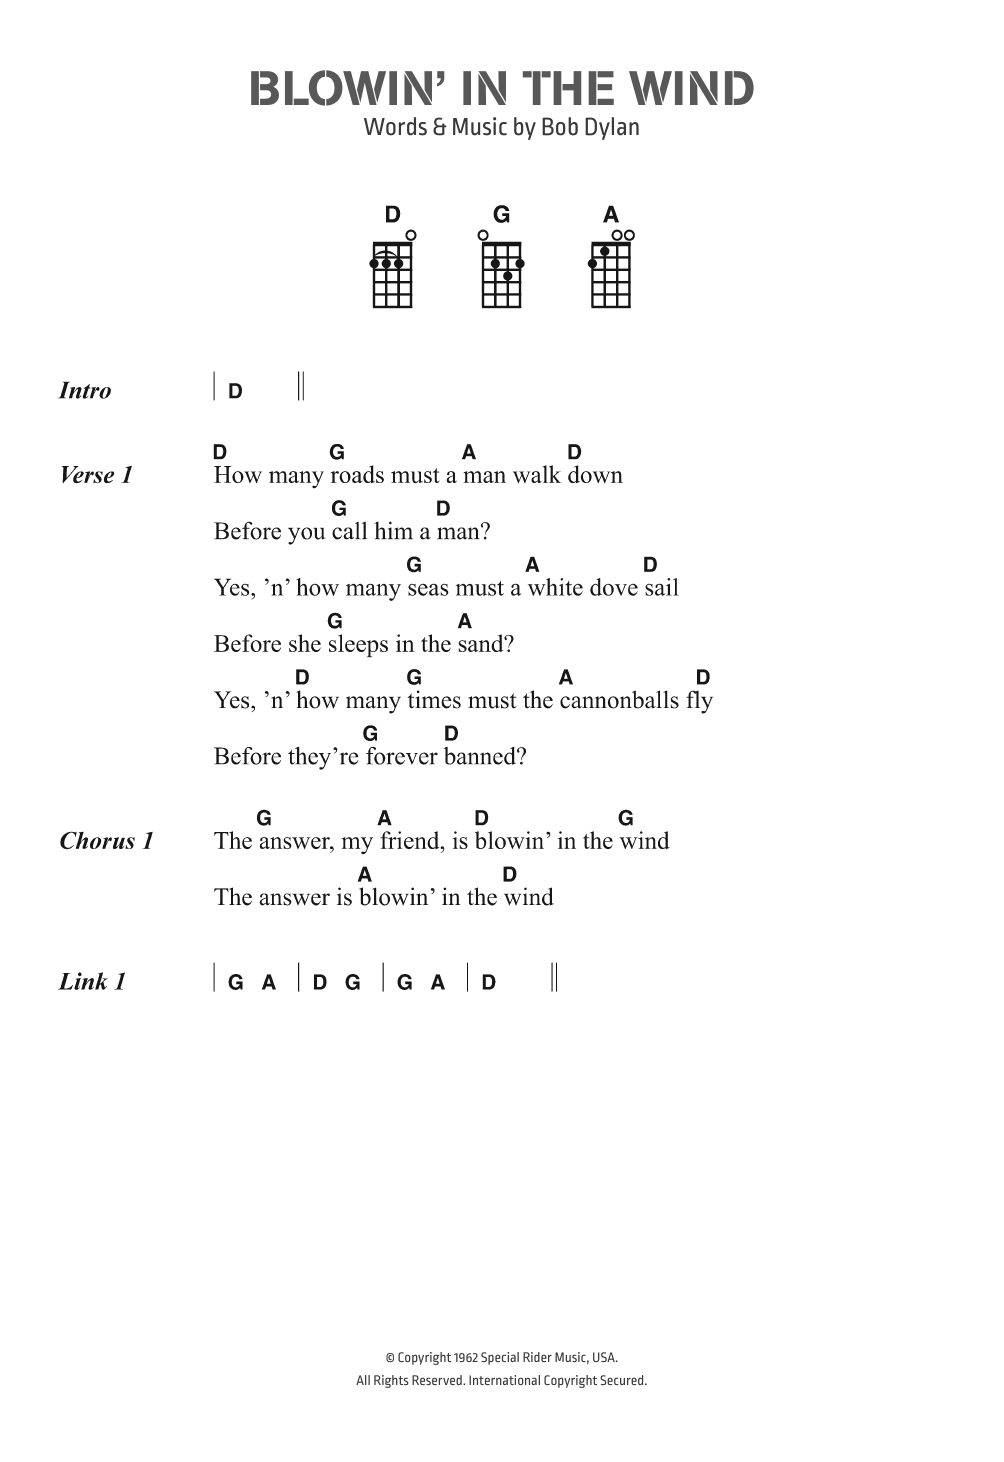 Blowing in the wind chords pdf